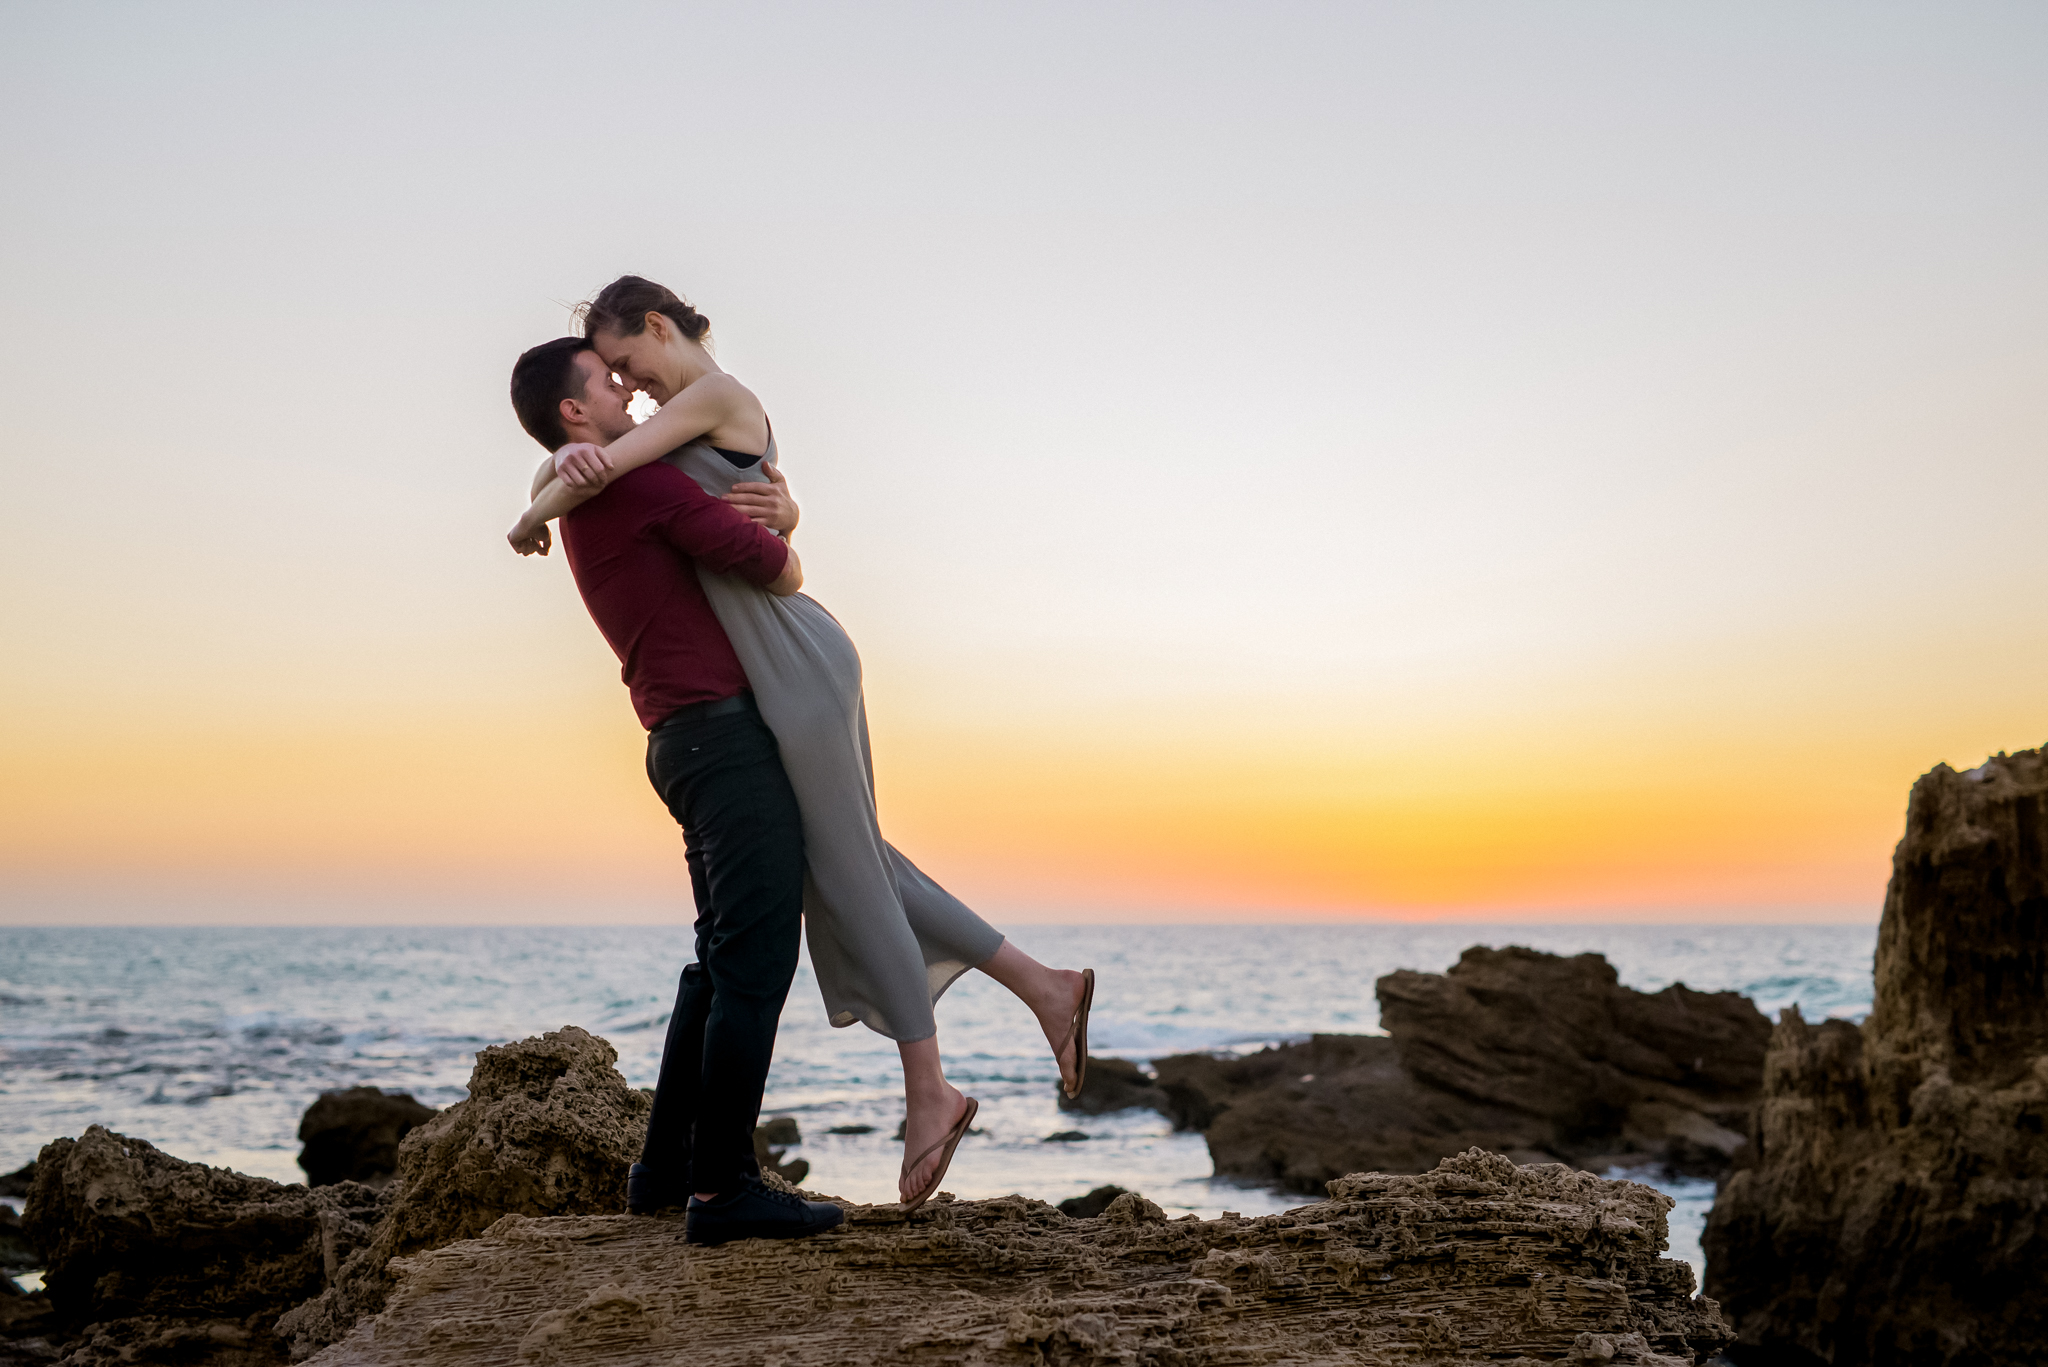 Cliffside-beach-engagement-session-hadera-israel-kate-giryes-photography-9547.jpg